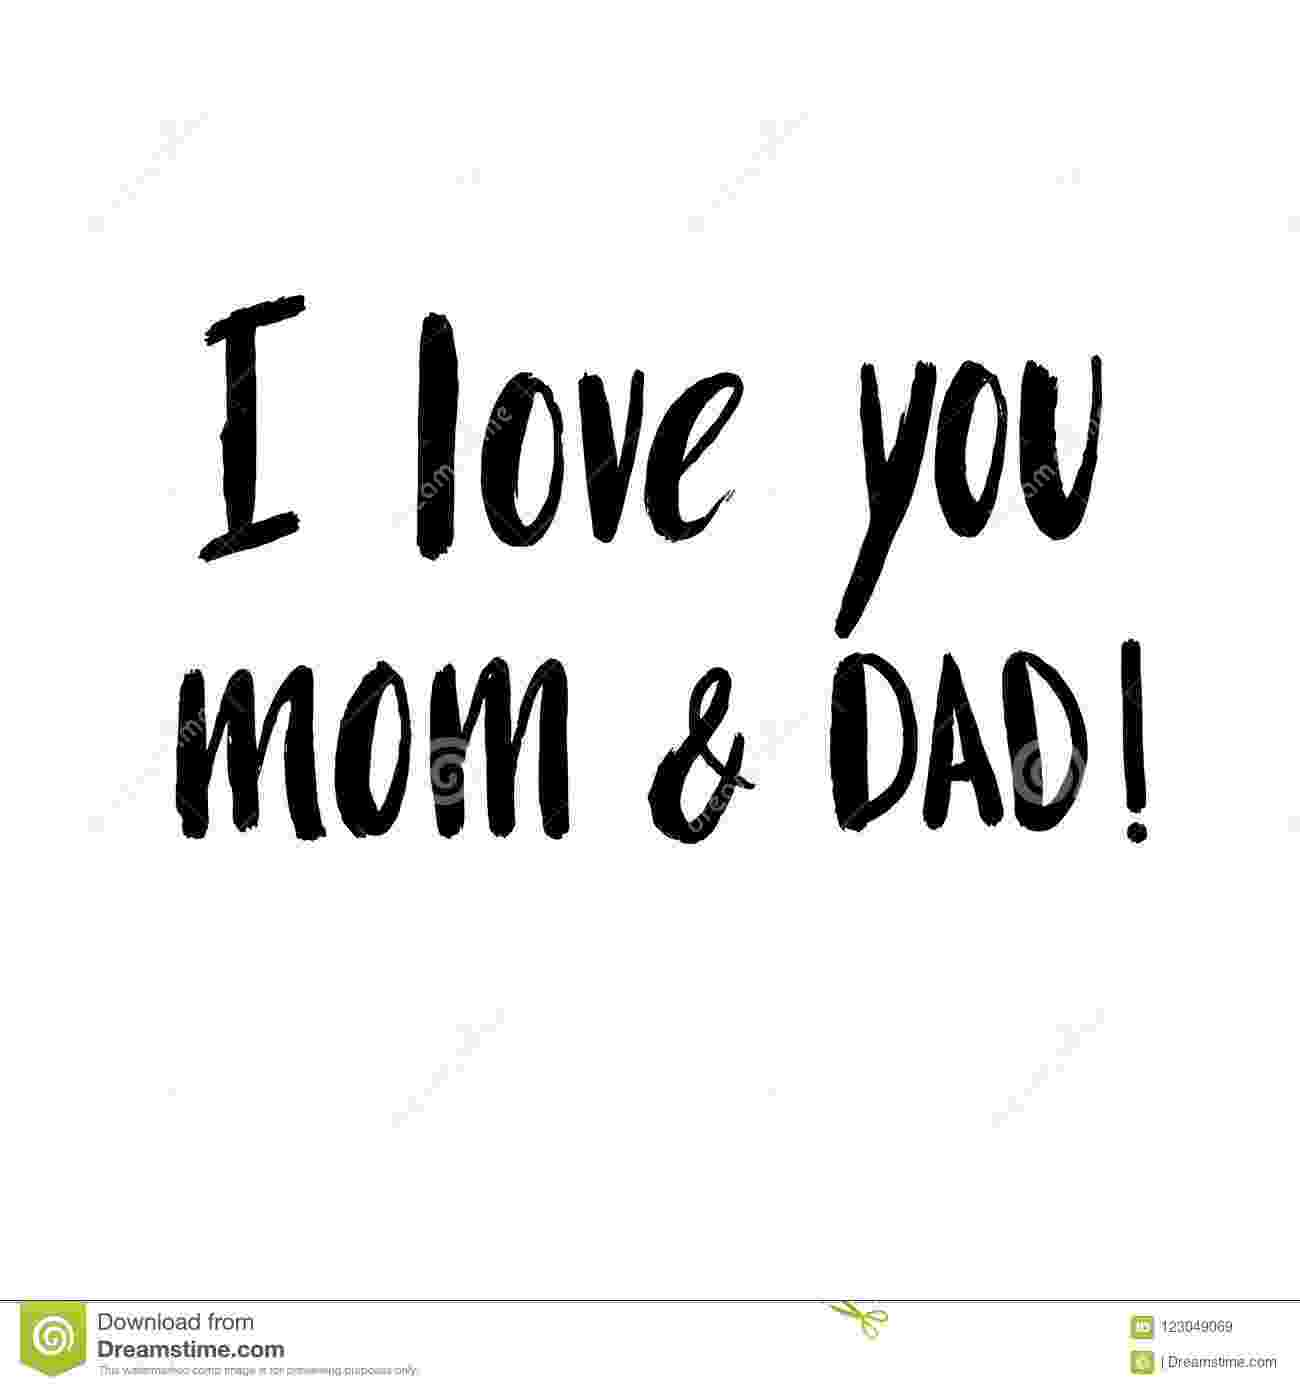 i love you mom and dad pictures i love you mom and dad coloring page free printable love dad and pictures mom i you